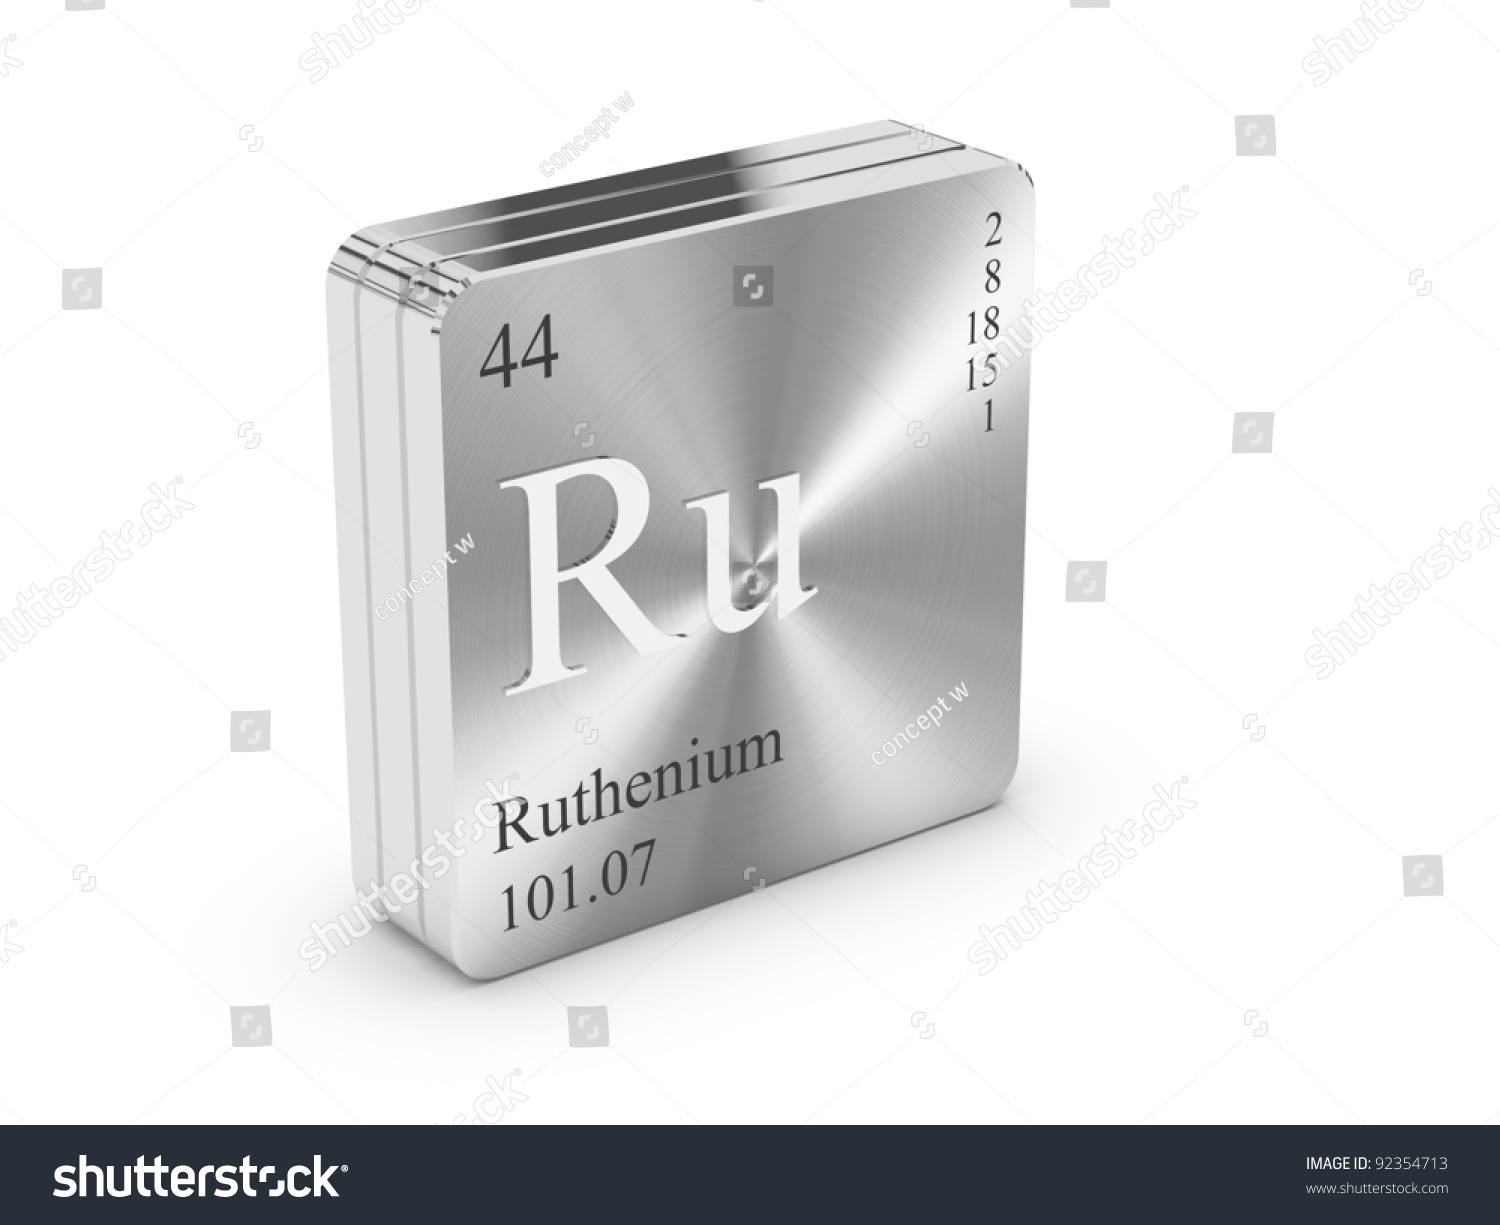 Ruthenium element periodic table on metal stock illustration ruthenium element of the periodic table on metal steel block gamestrikefo Choice Image